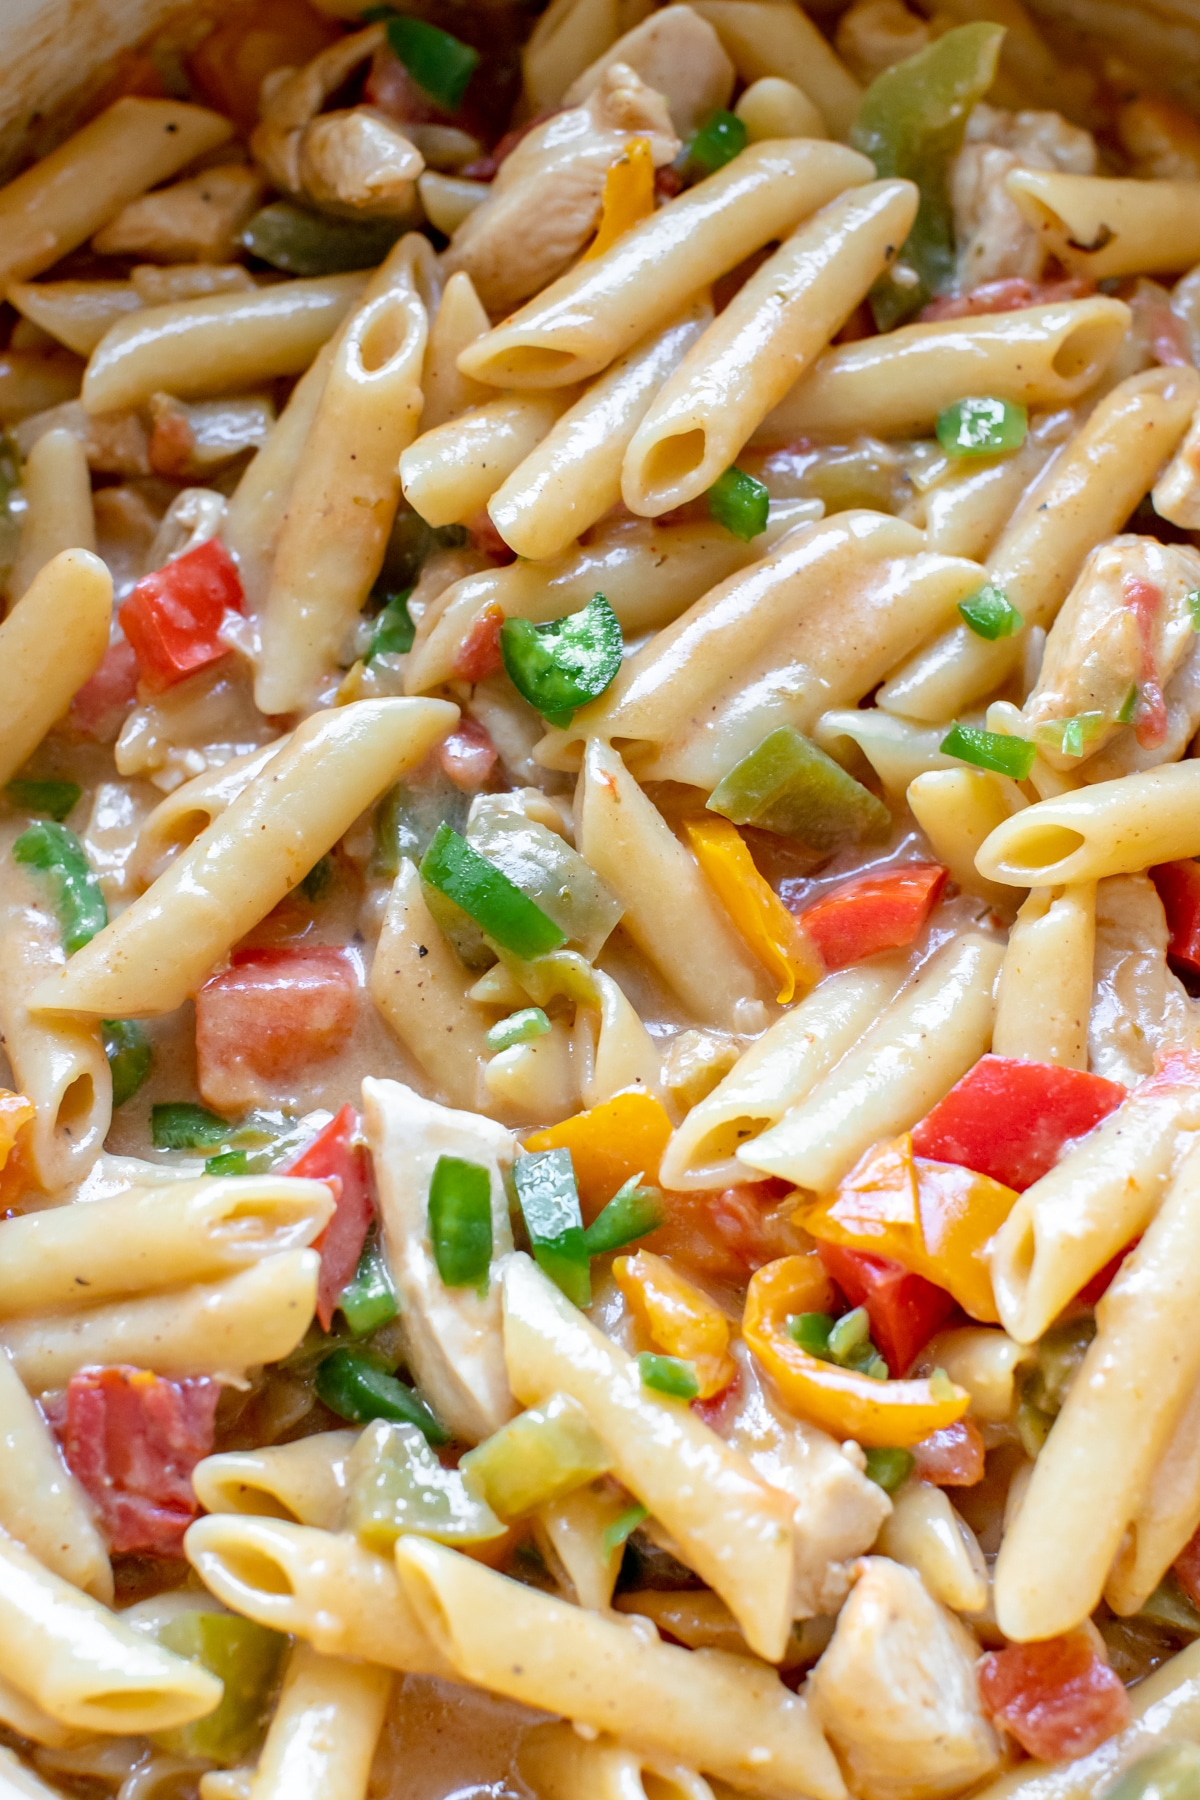 an up close photo of penne pasta with chicken, bell peppers and jalapeno